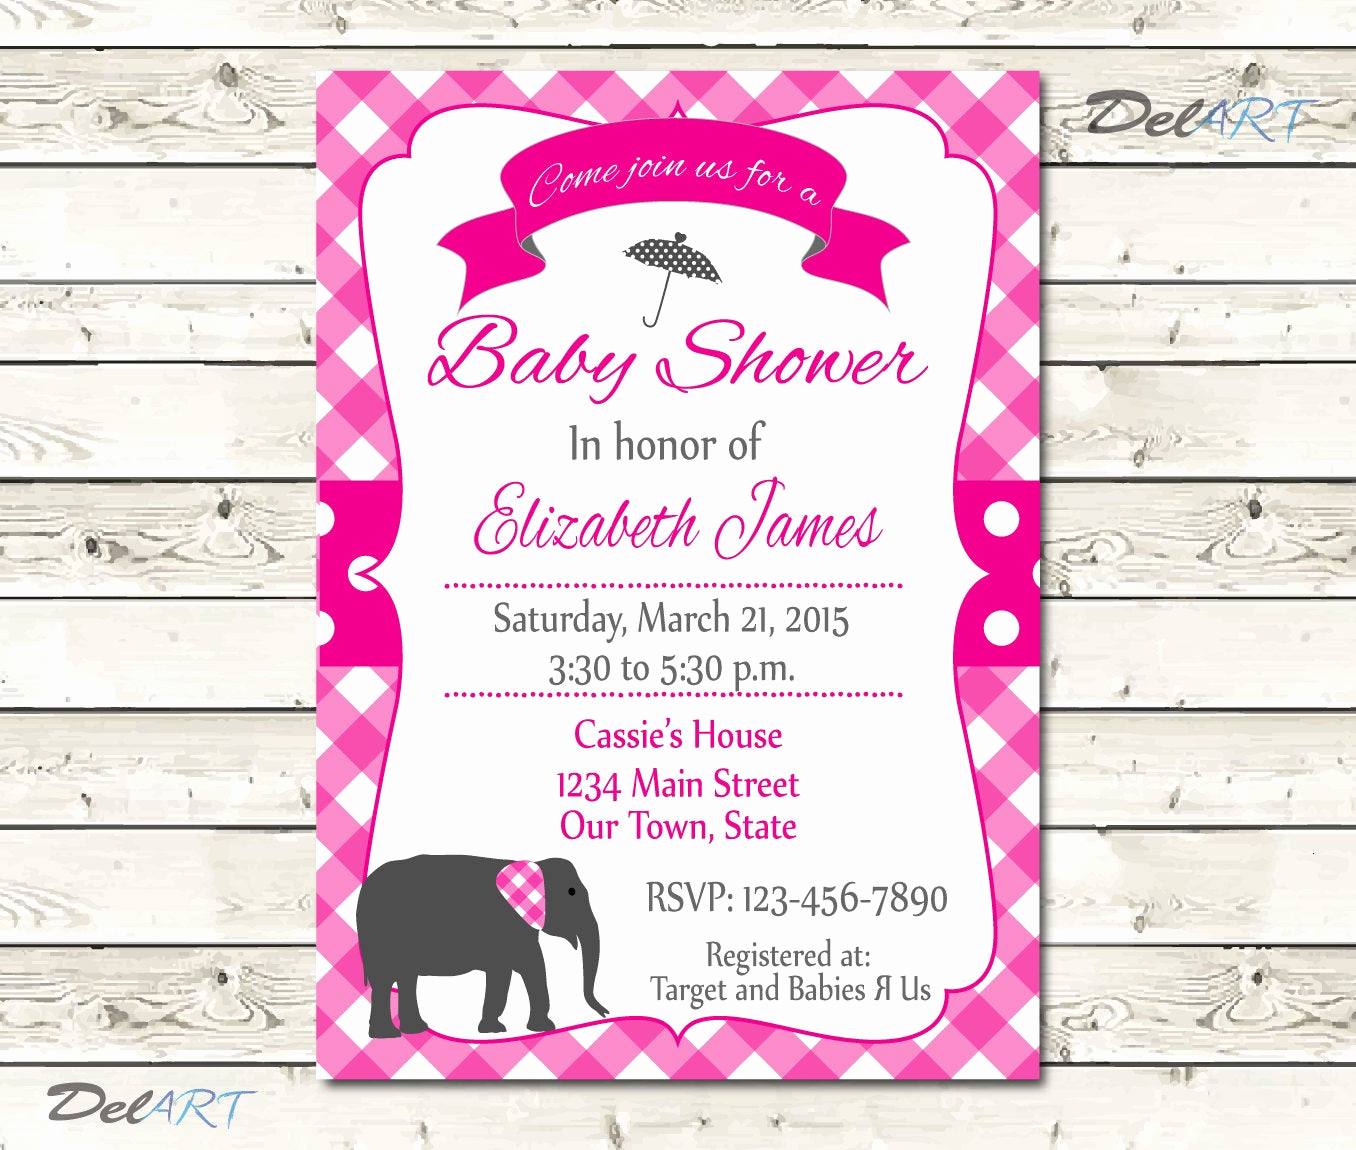 Baby Shower Save the Dates Best Of Chandeliers & Pendant Lights